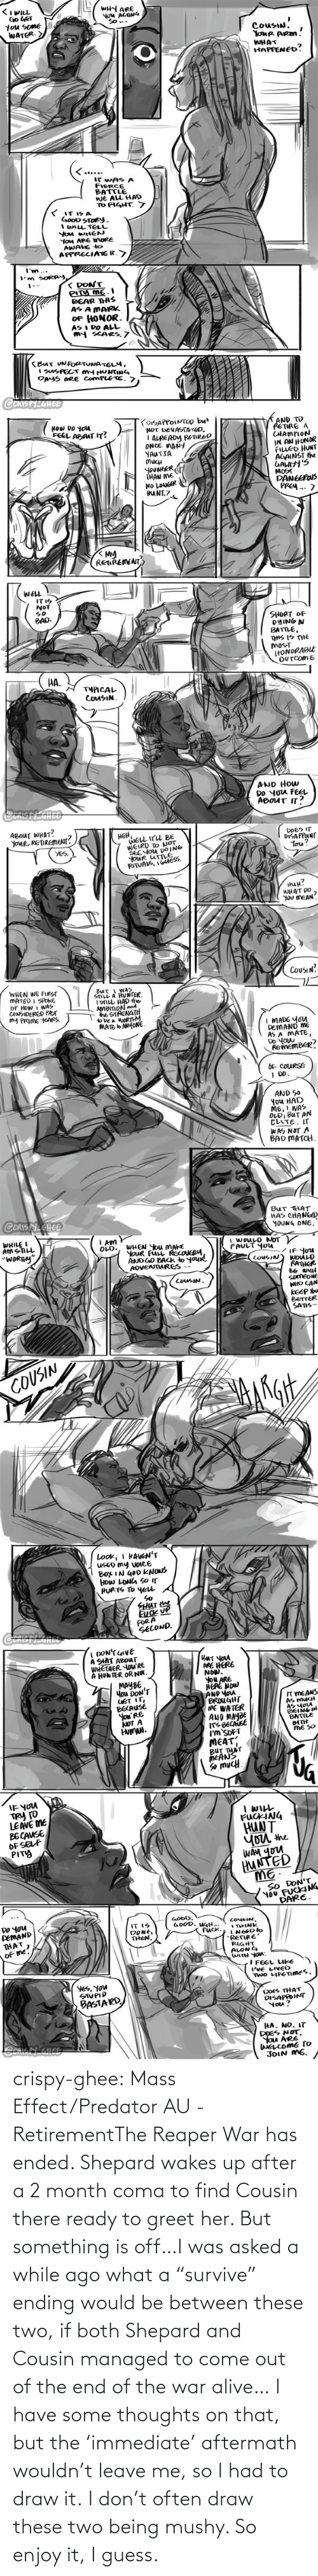 "mass: crispy-ghee:  Mass Effect/Predator AU - RetirementThe Reaper War has ended. Shepard wakes up after a 2 month coma to find Cousin there ready to greet her. But something is off…I was asked a while ago what a ""survive"" ending would be between these two, if both Shepard and Cousin managed to come out of the end of the war alive… I have some thoughts on that, but the 'immediate' aftermath wouldn't leave me, so I had to draw it. I don't often draw these two being mushy. So enjoy it, I guess."